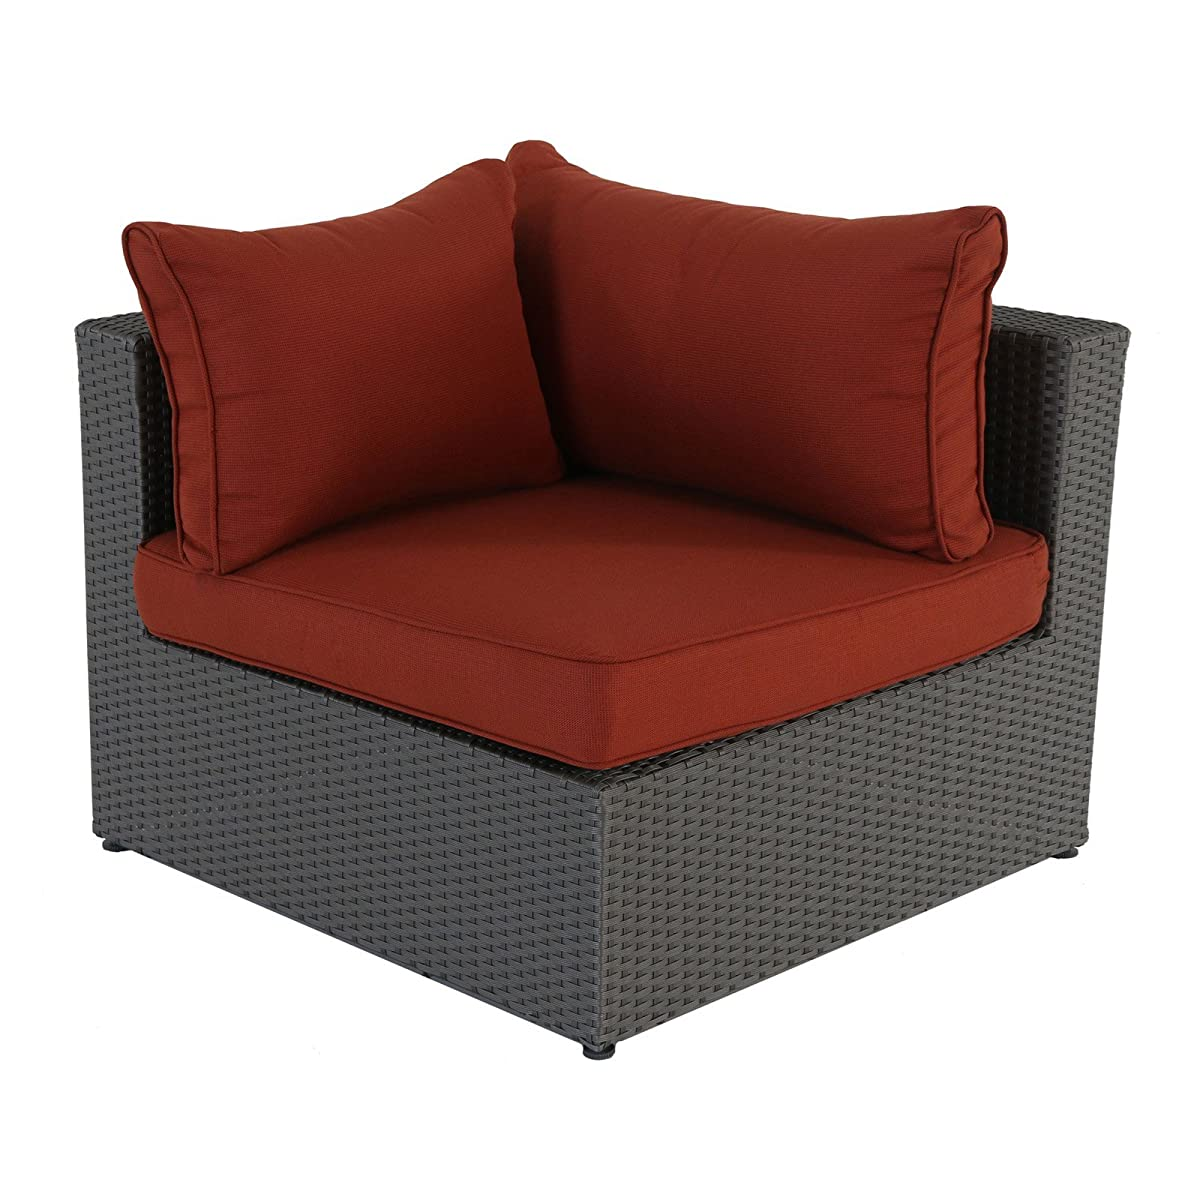 Becket 6-Piece Wicker Sectional Set (Red Cushions)